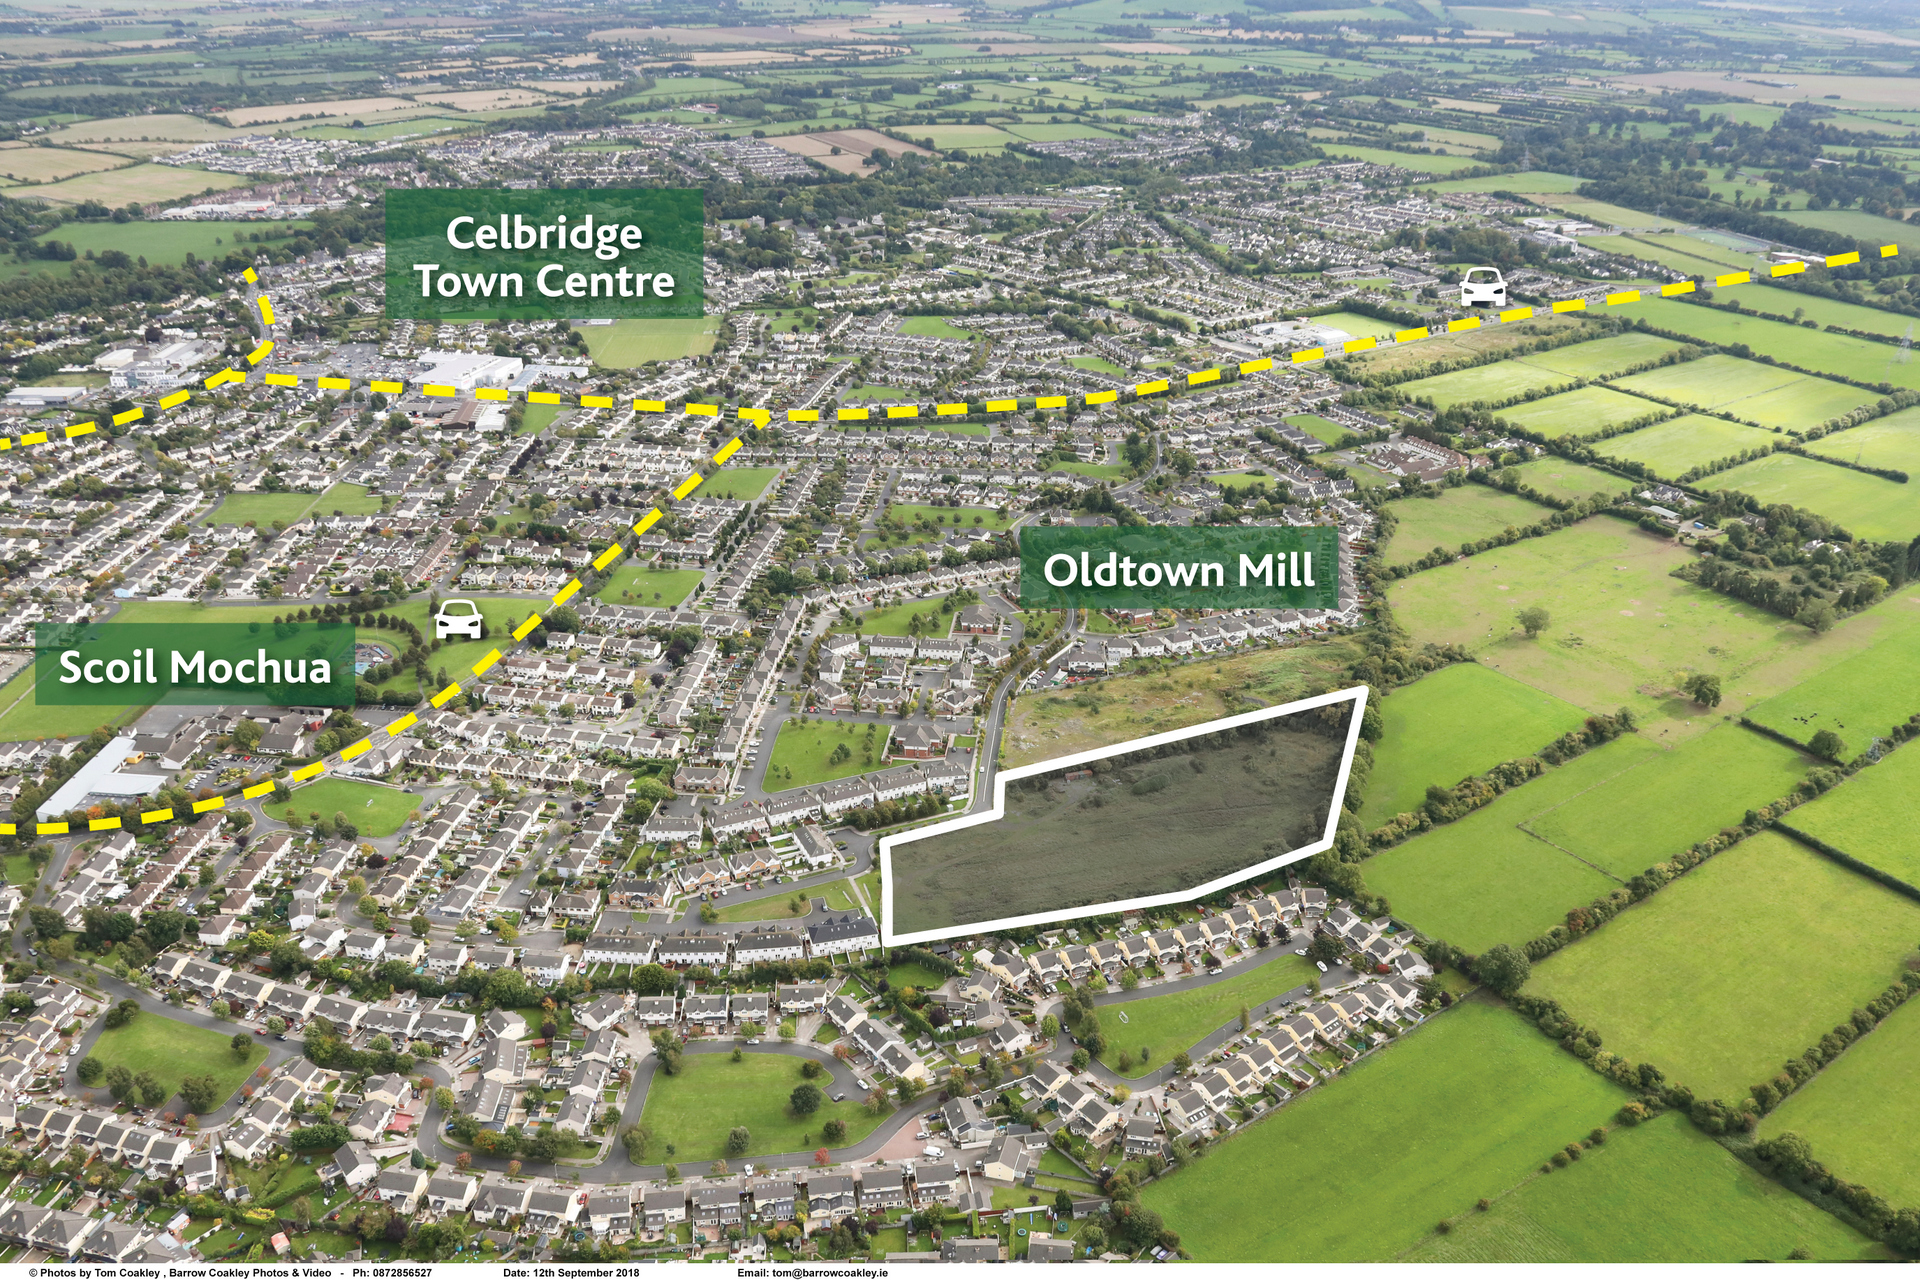 Press Release: Approx. 5.45 acres (2.21 hectares), Oldtown, Celbridge, Co. Kildare – Zoned Residential